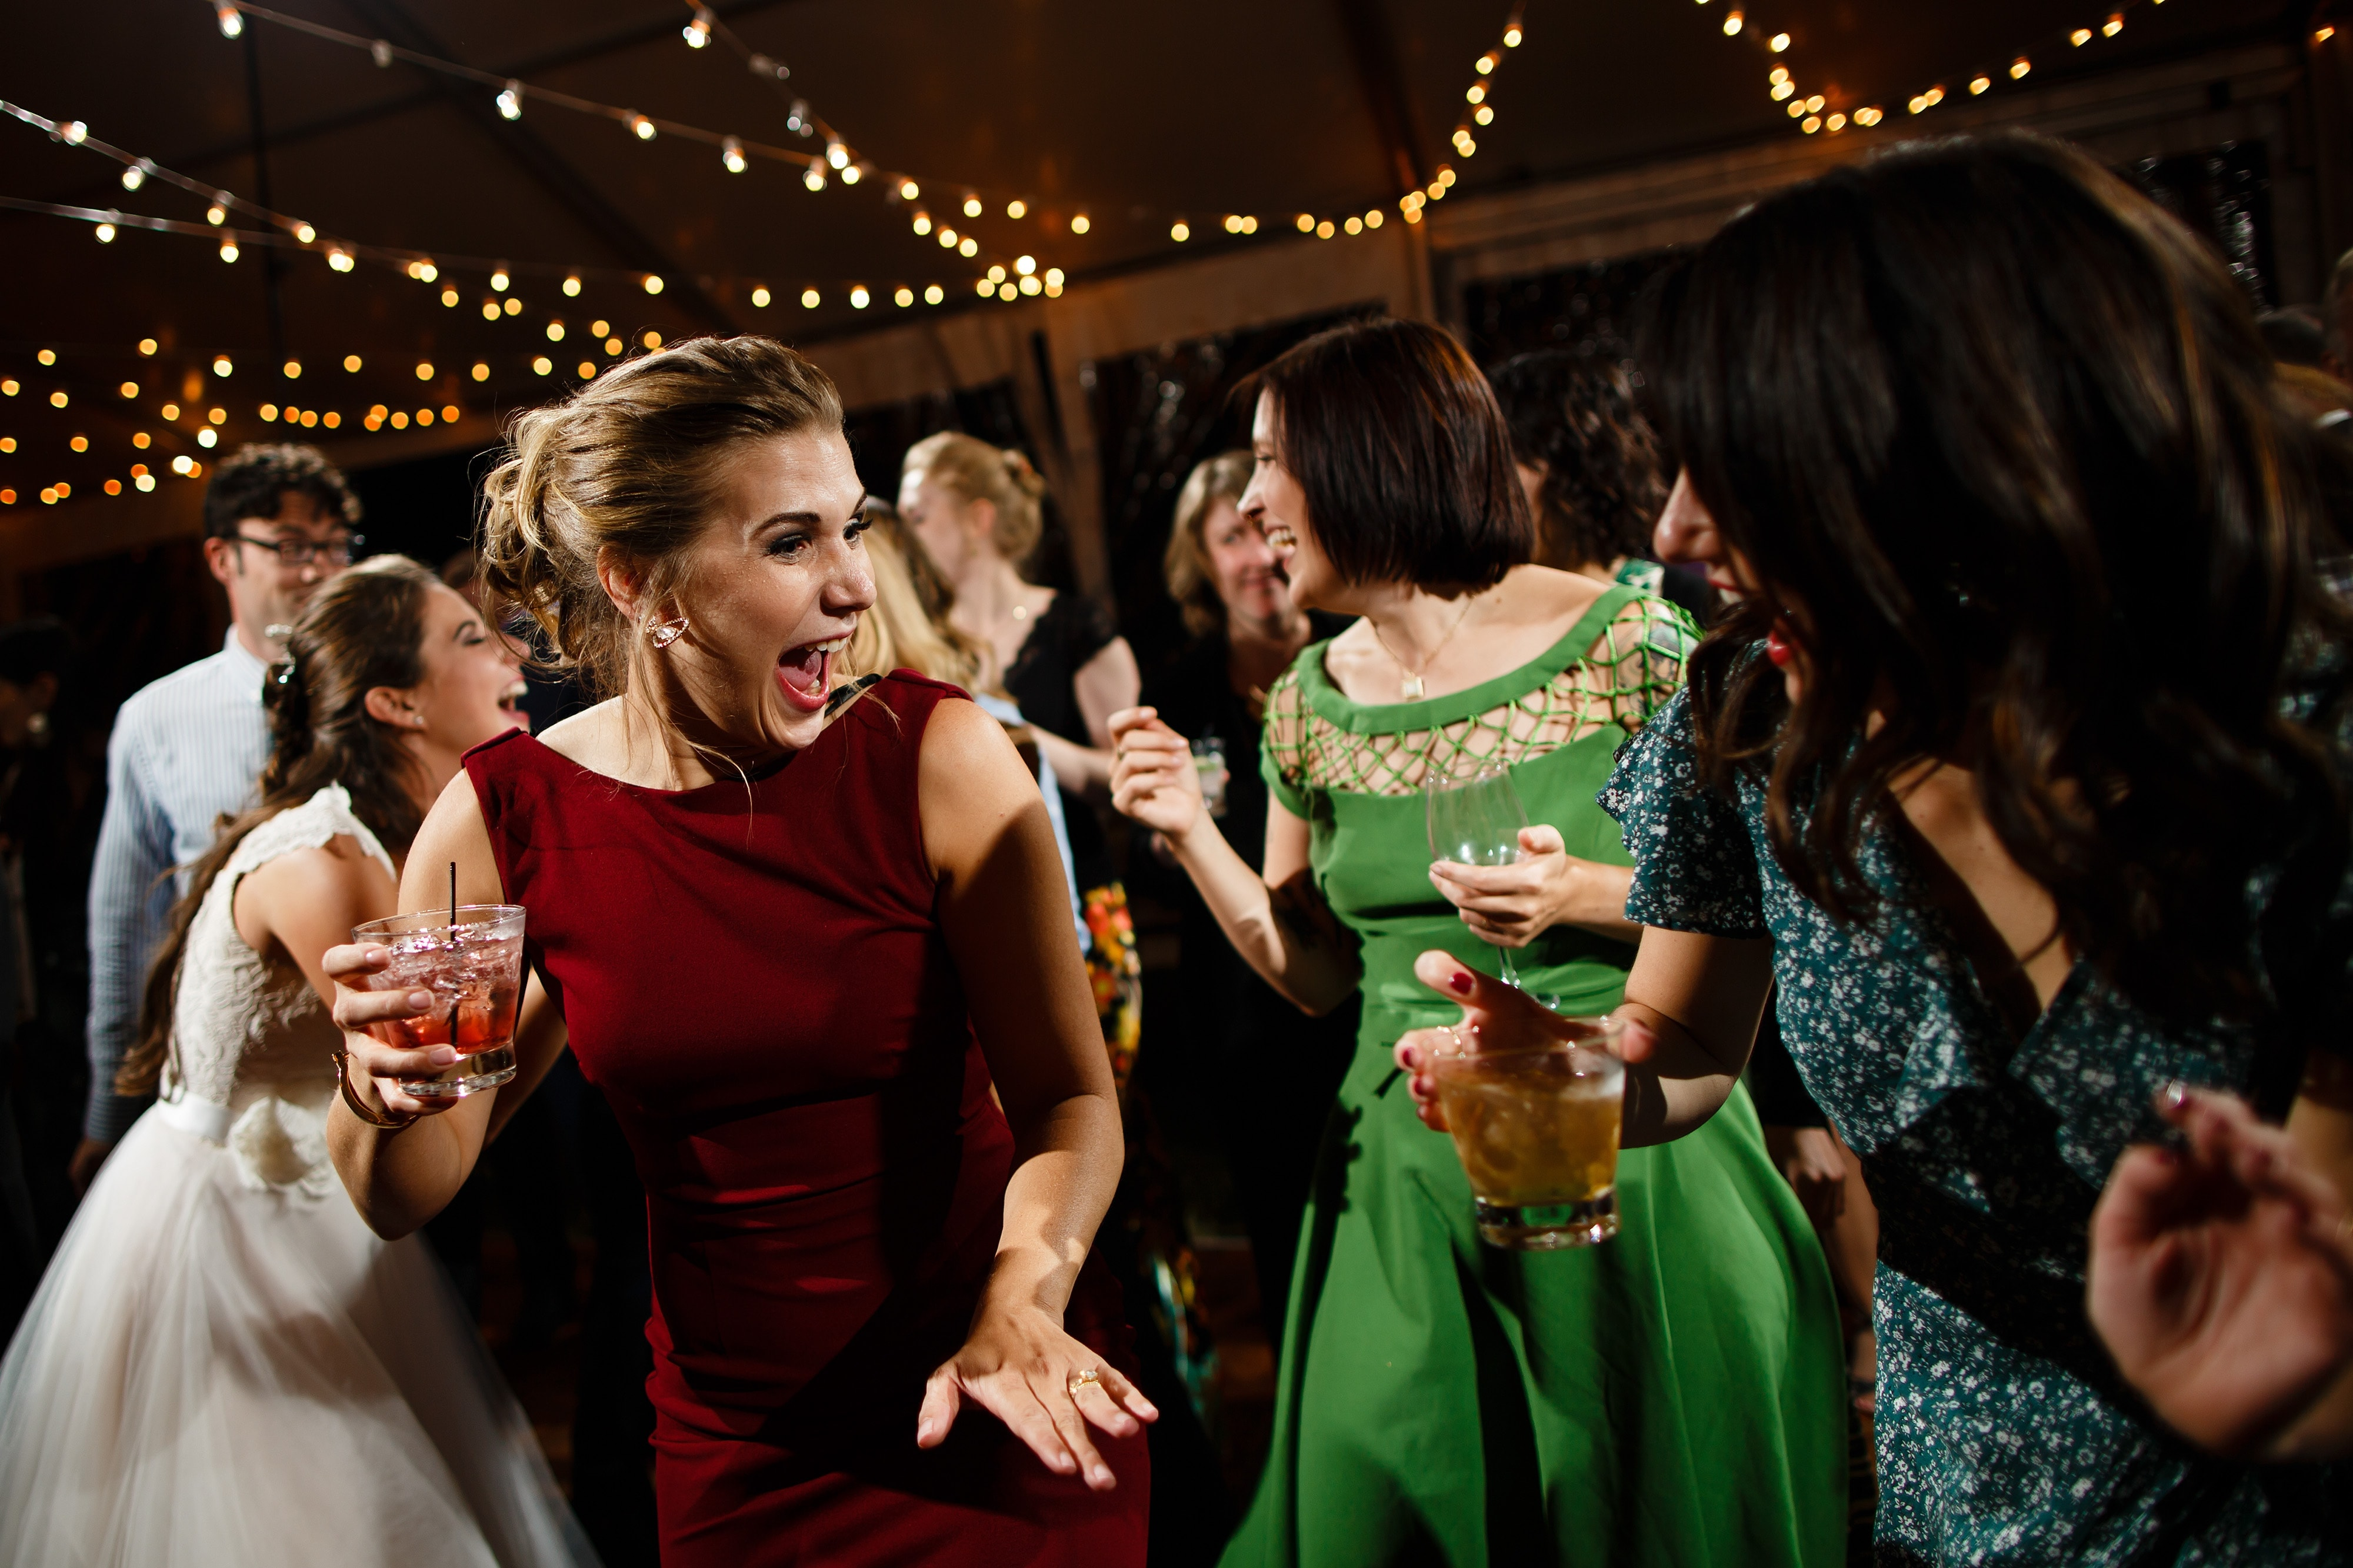 Guests dance together at the Snowmass Cottages reception